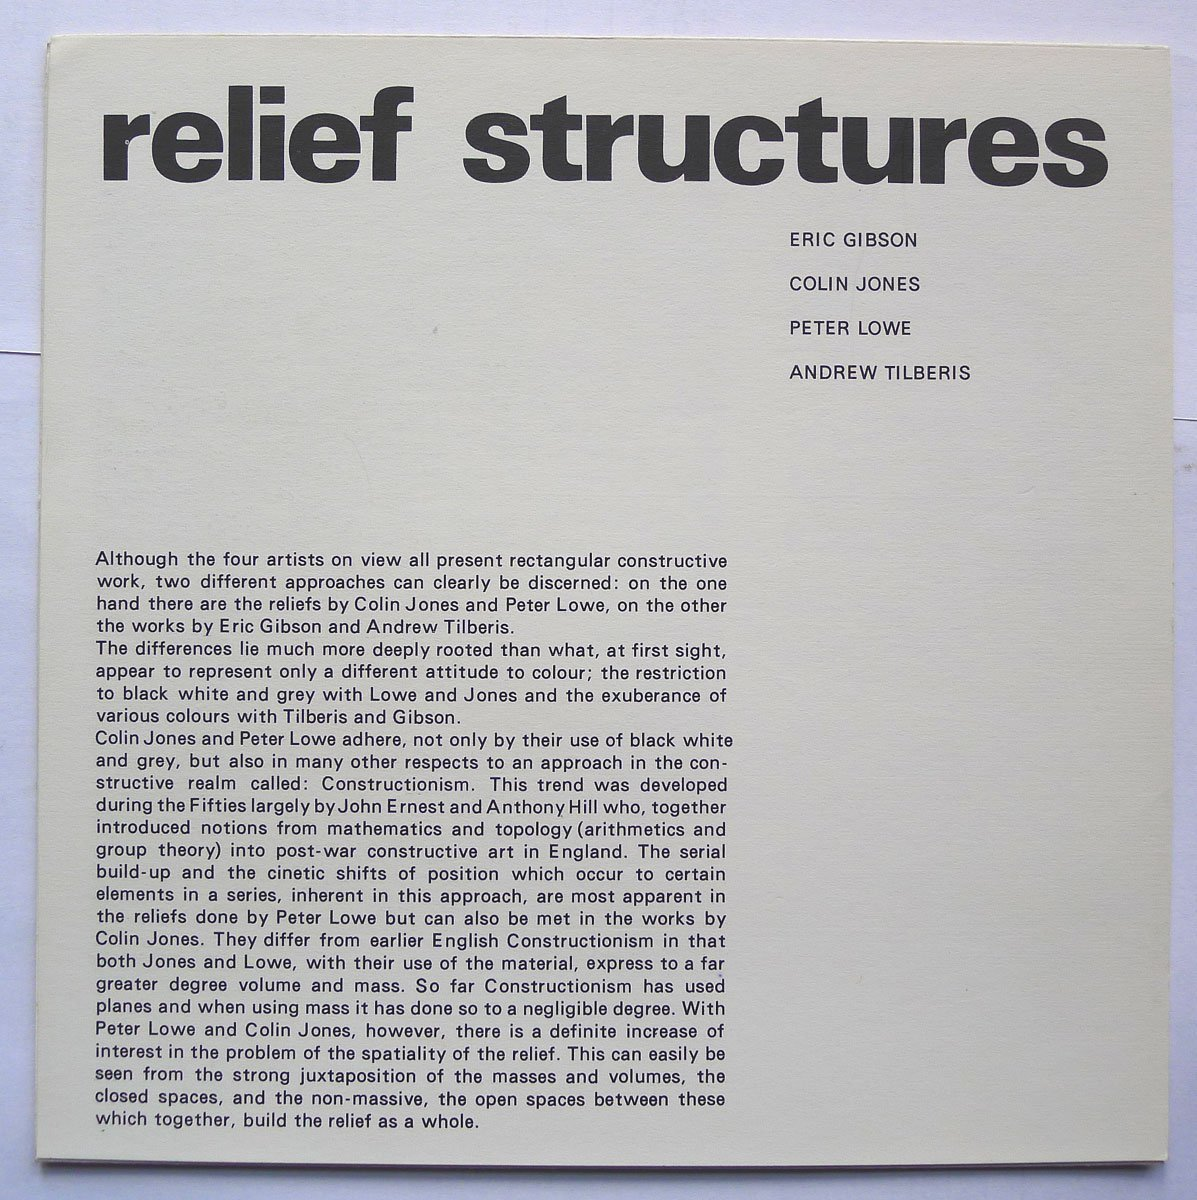 STRUCTURALISM  Relief Structures  Eric Gibson, Colin Jones, Peter Lowe,  Andrew Tilberis  Institute of Contemporary Arts, London, May 1966